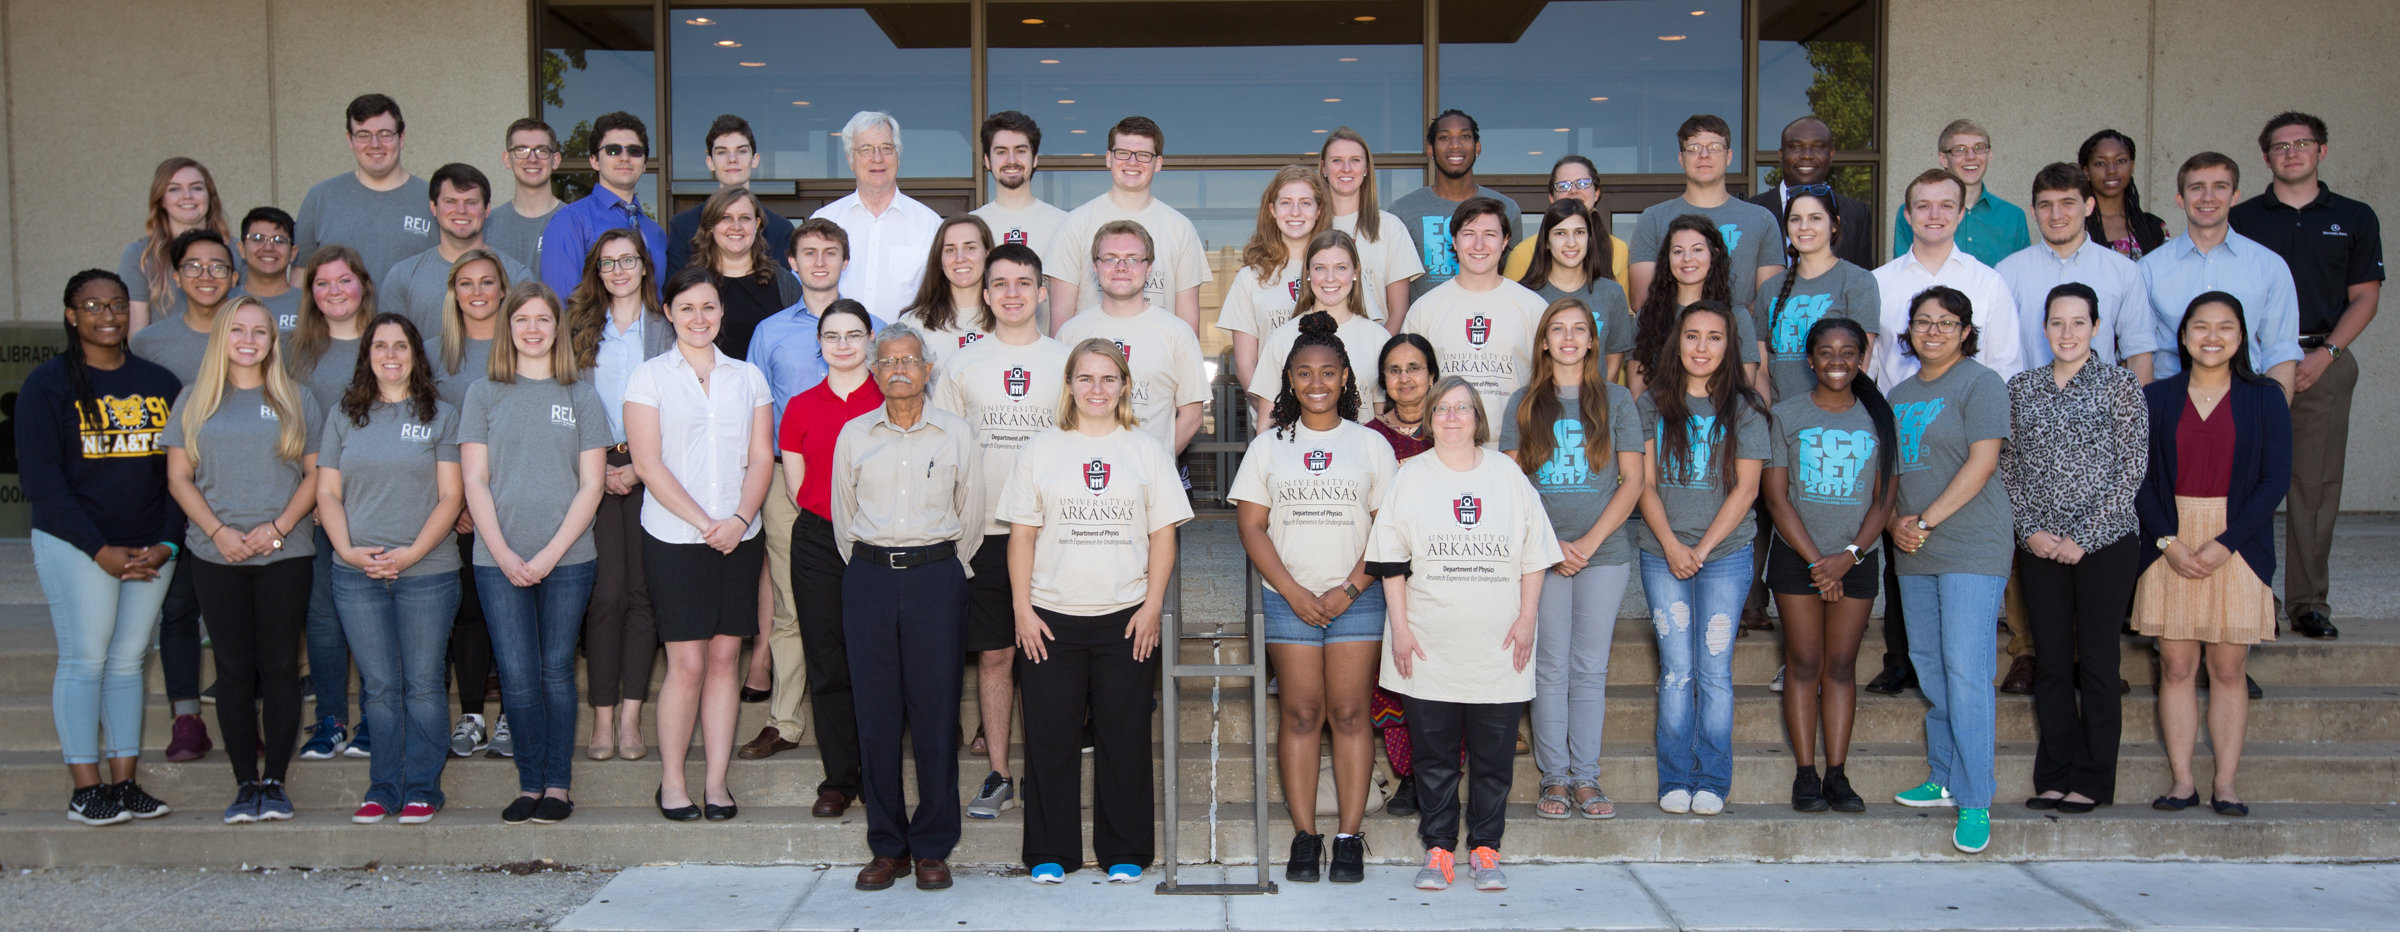 2017 All REU Participants